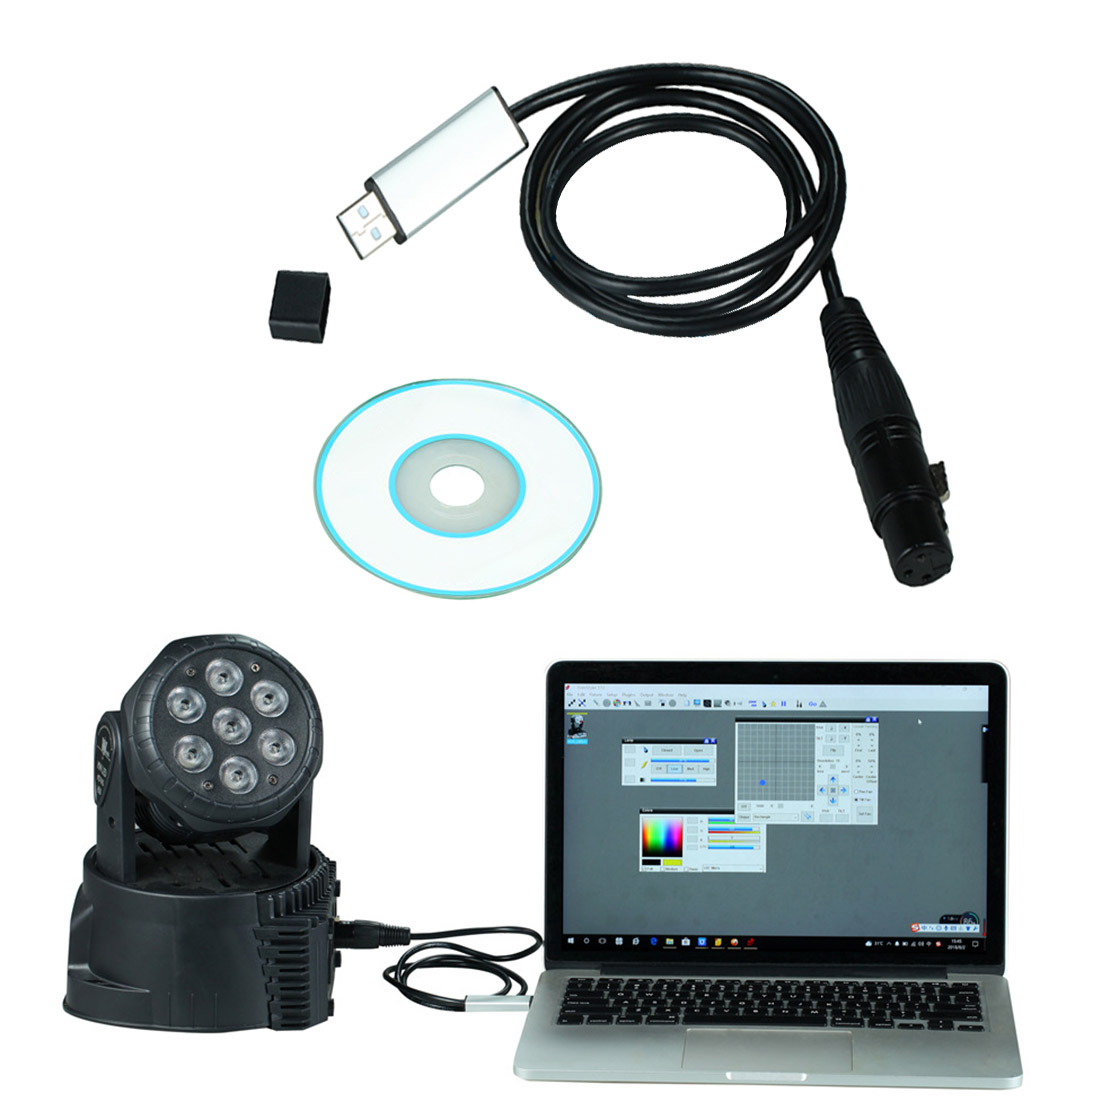 USB to DMX Interface Adapter Cable 110cm Length Stage Light PC DMX512 Controller Dimmer DMX USB Signal Conversion